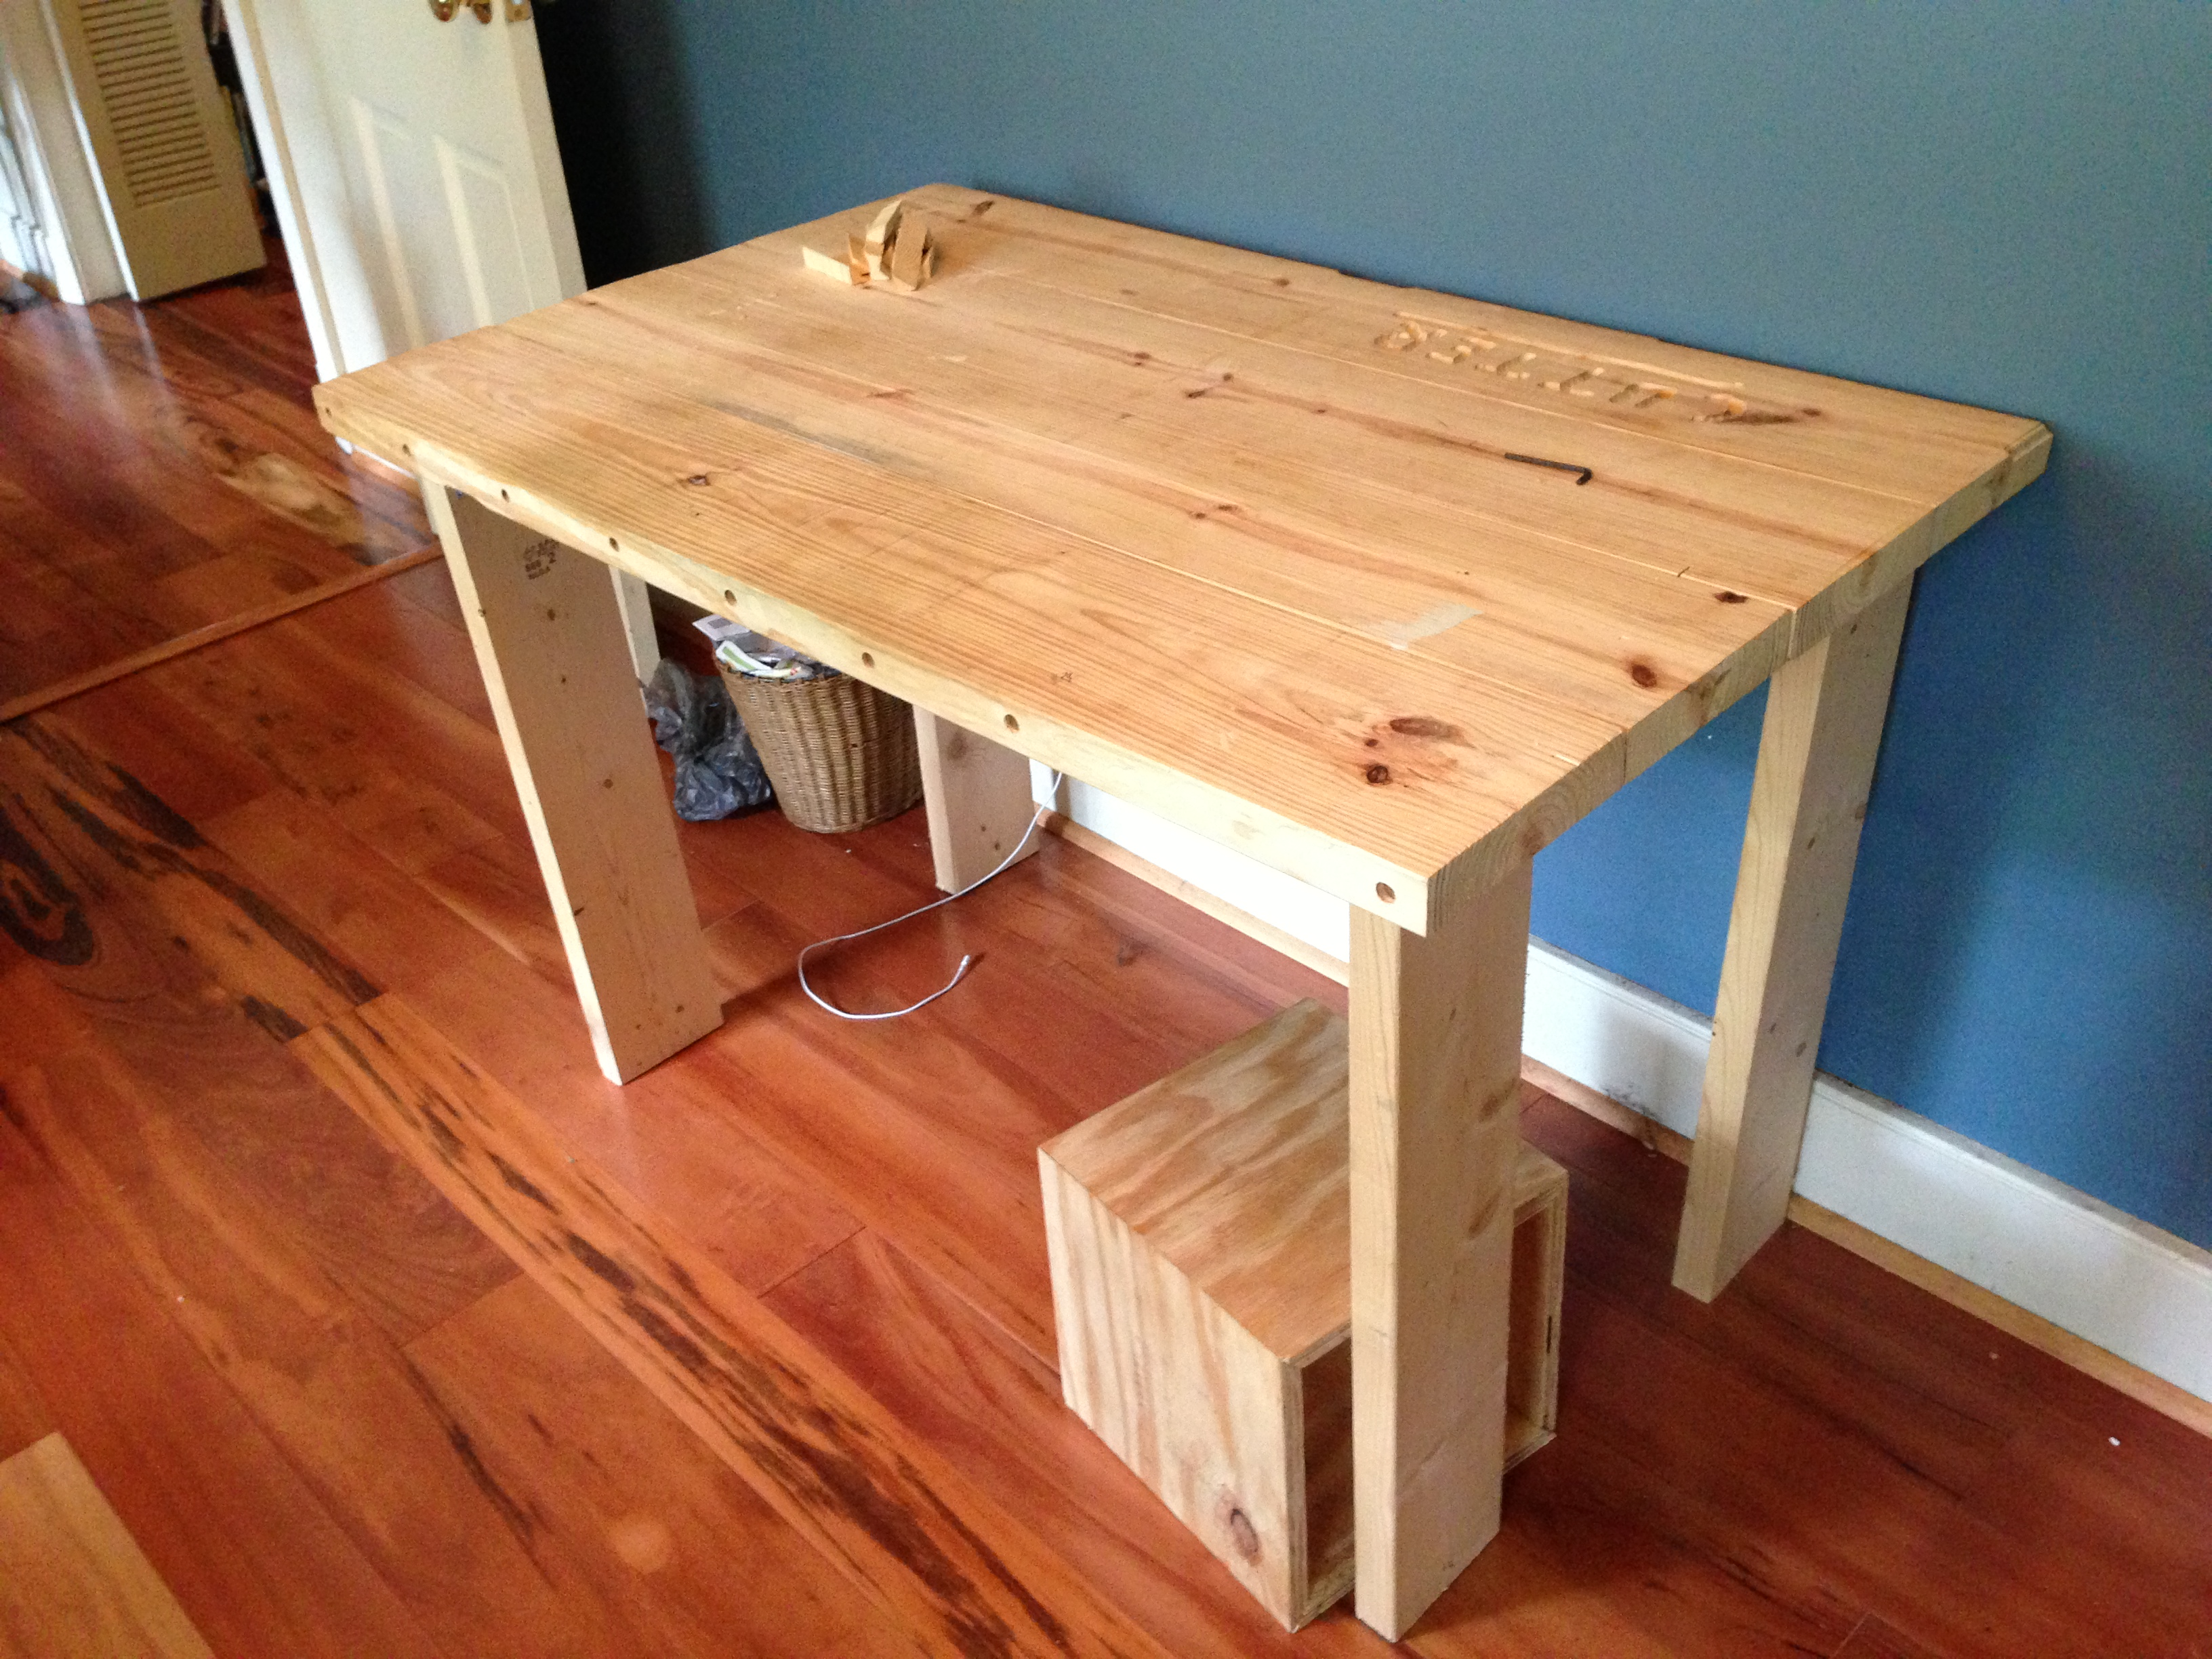 Making A Table Top With Dowels